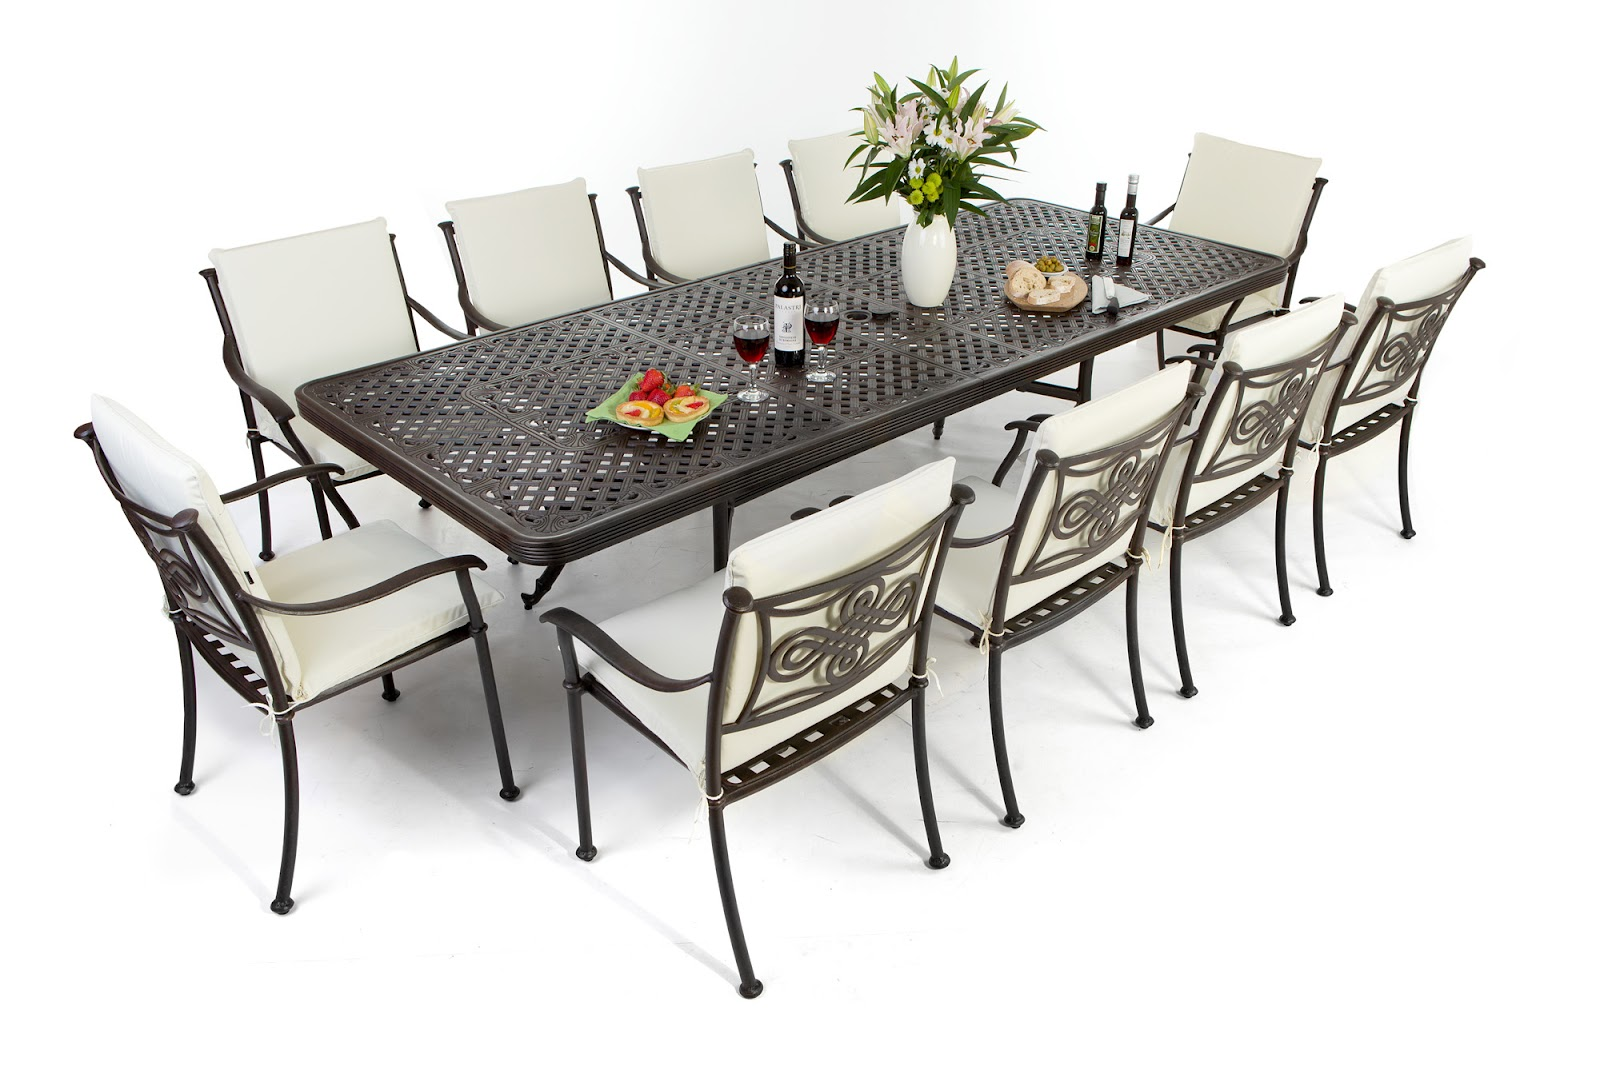 seater glass dining table and chairs  modern kitchen furniture  -  seater glass dining table and chairs  modern kitchen furniture photosideas  reviews